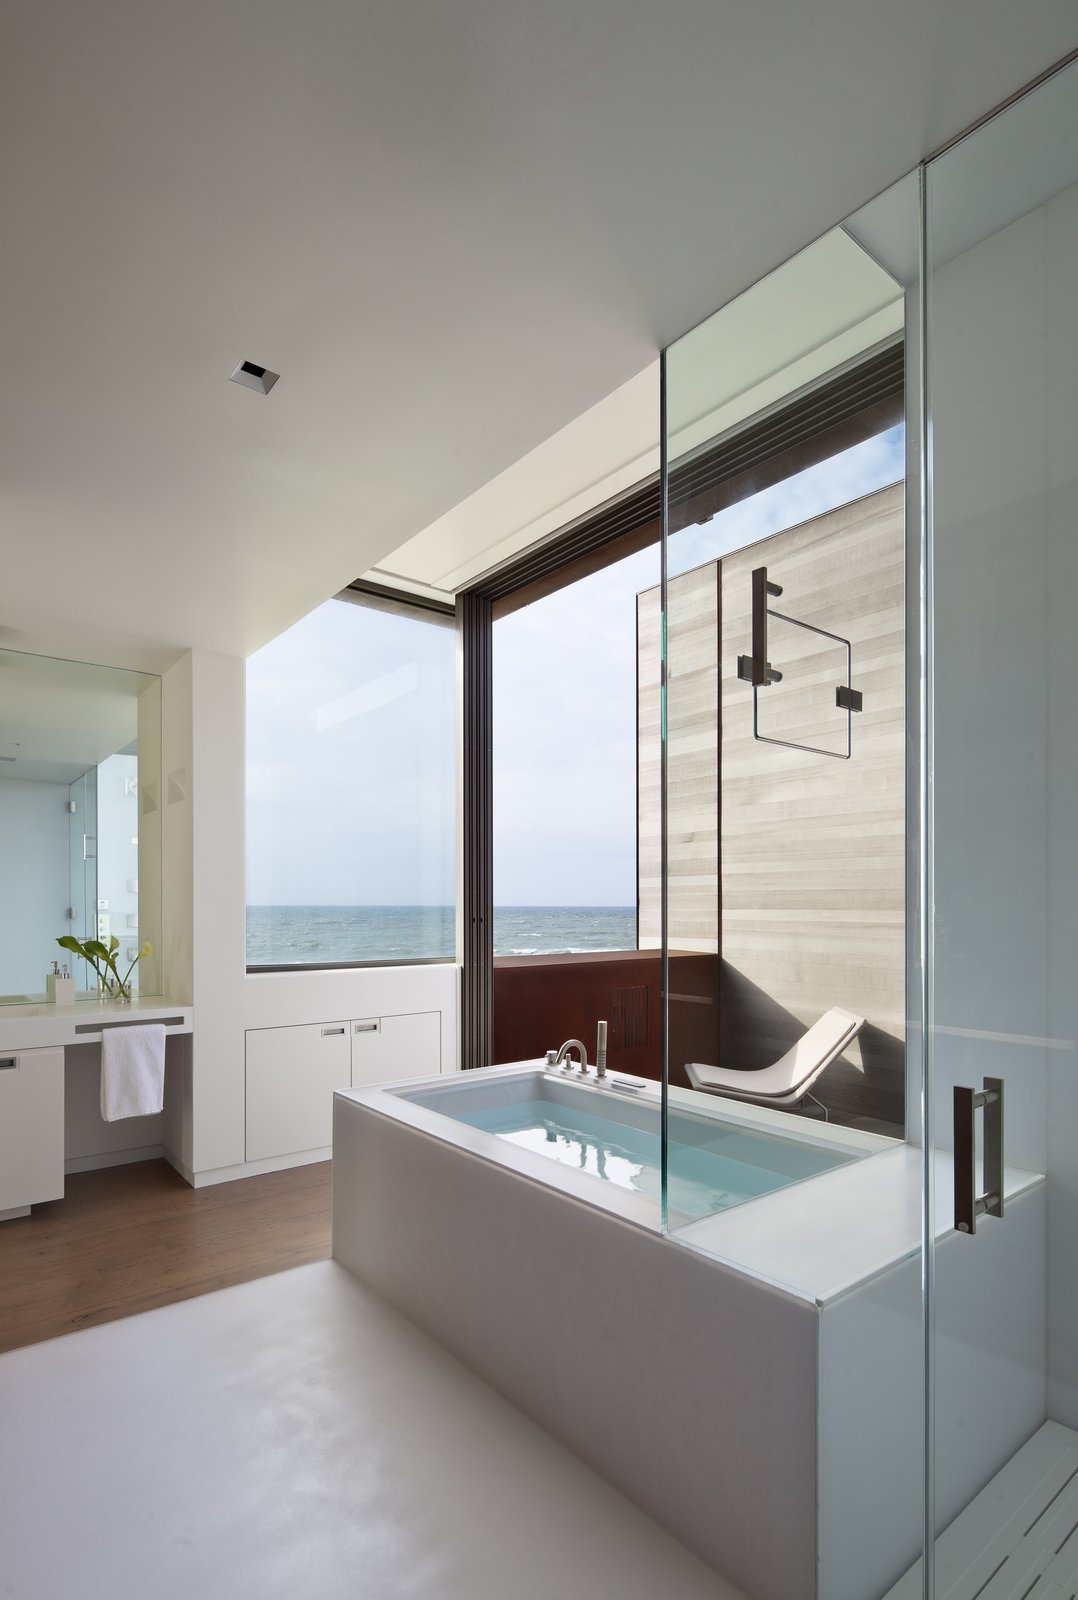 Bath Room, Engineered Quartz Counter, Enclosed Shower, Medium Hardwood Floor, Soaking Tub, and Recessed Lighting  Sagaponack, NY